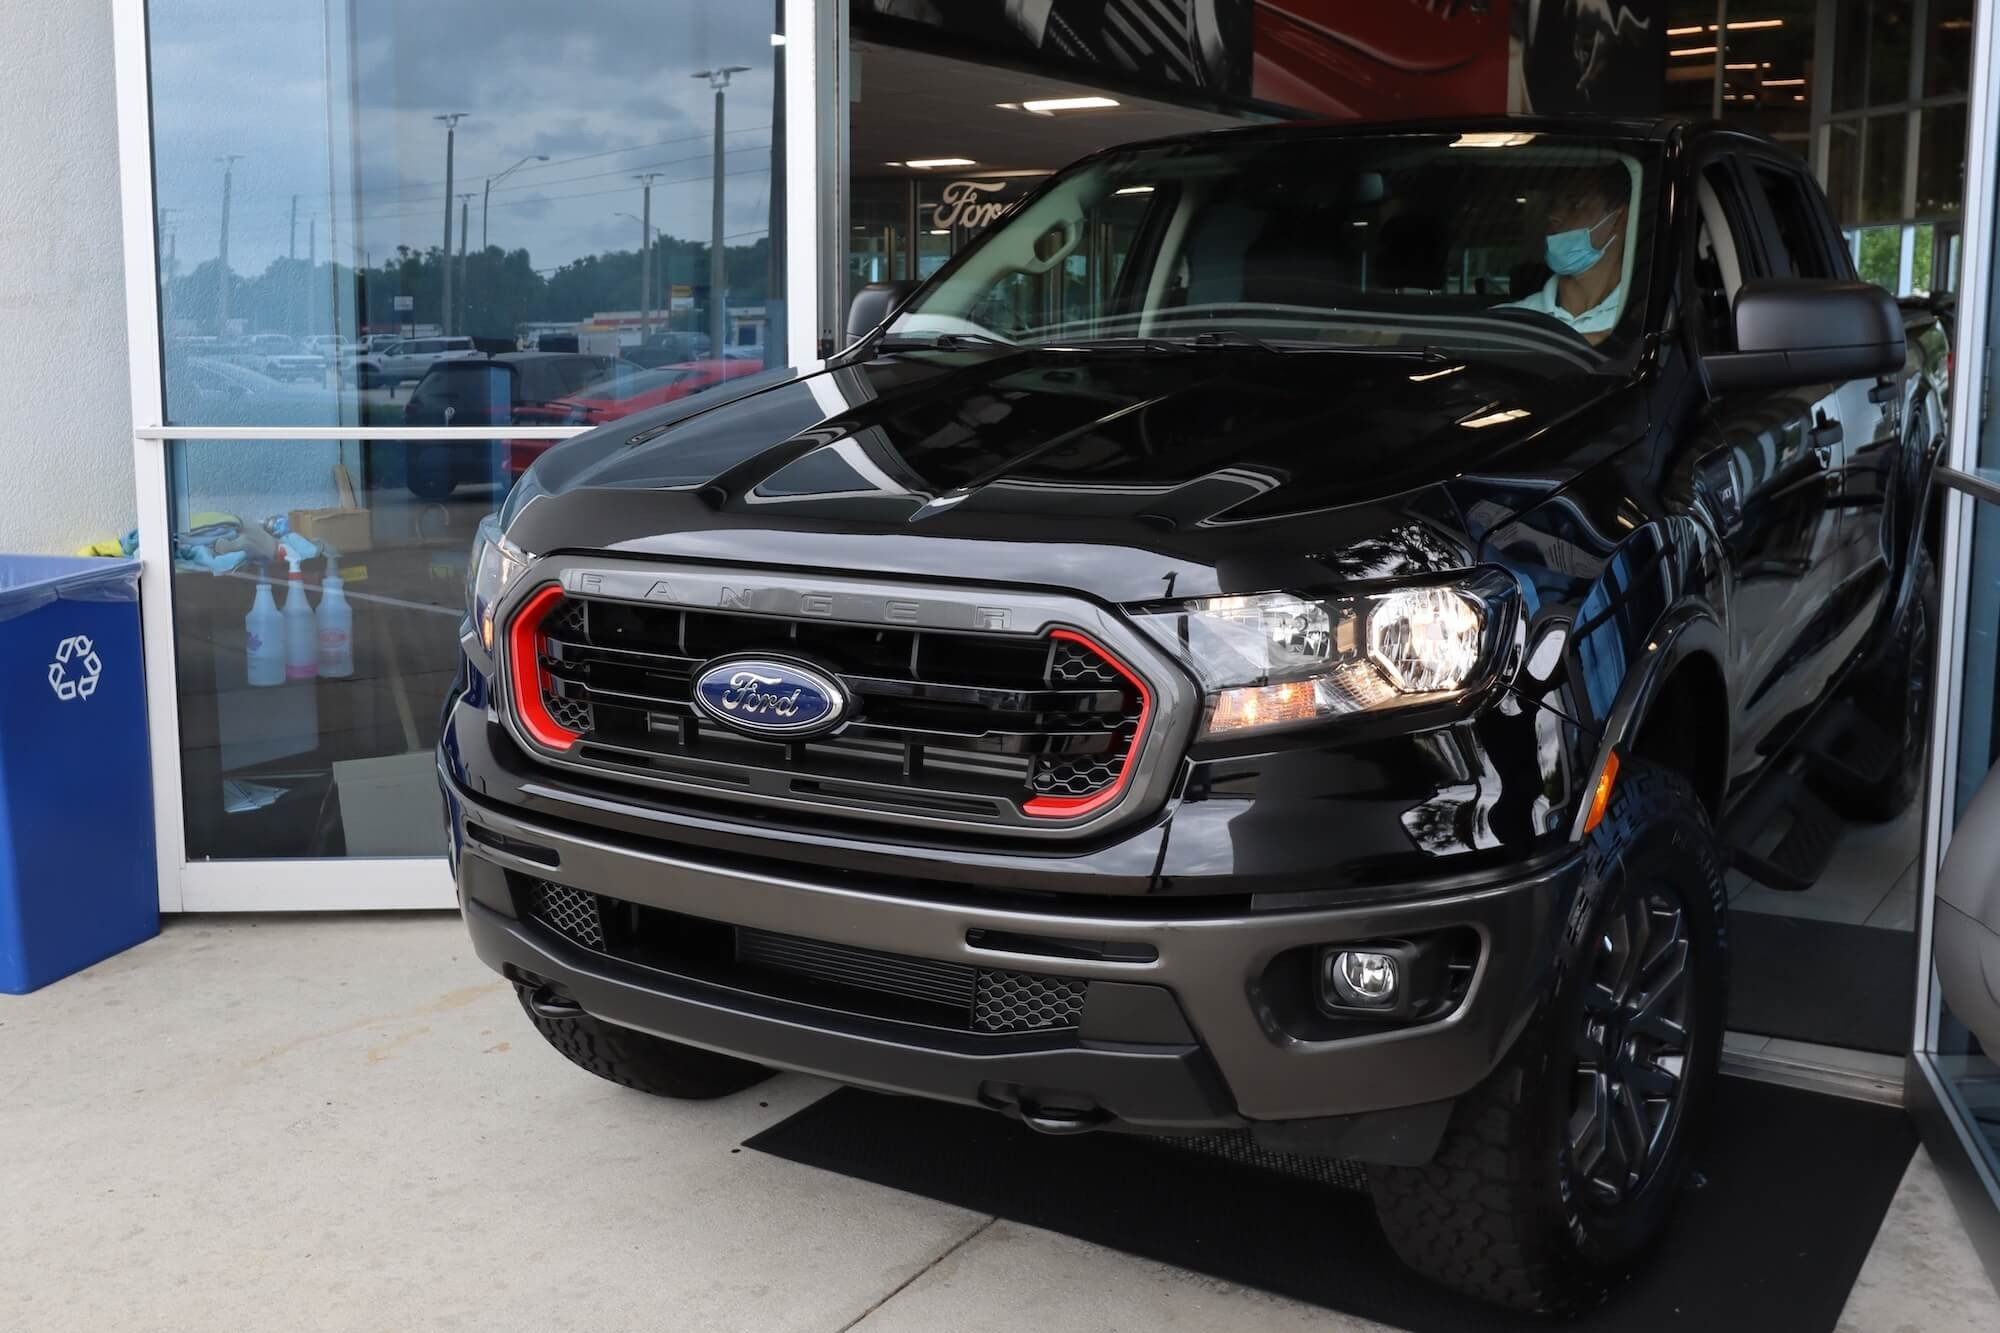 Mullinax Ford - Hole-in-One Ranger Tremor Edition Truck Prize - Front Exit